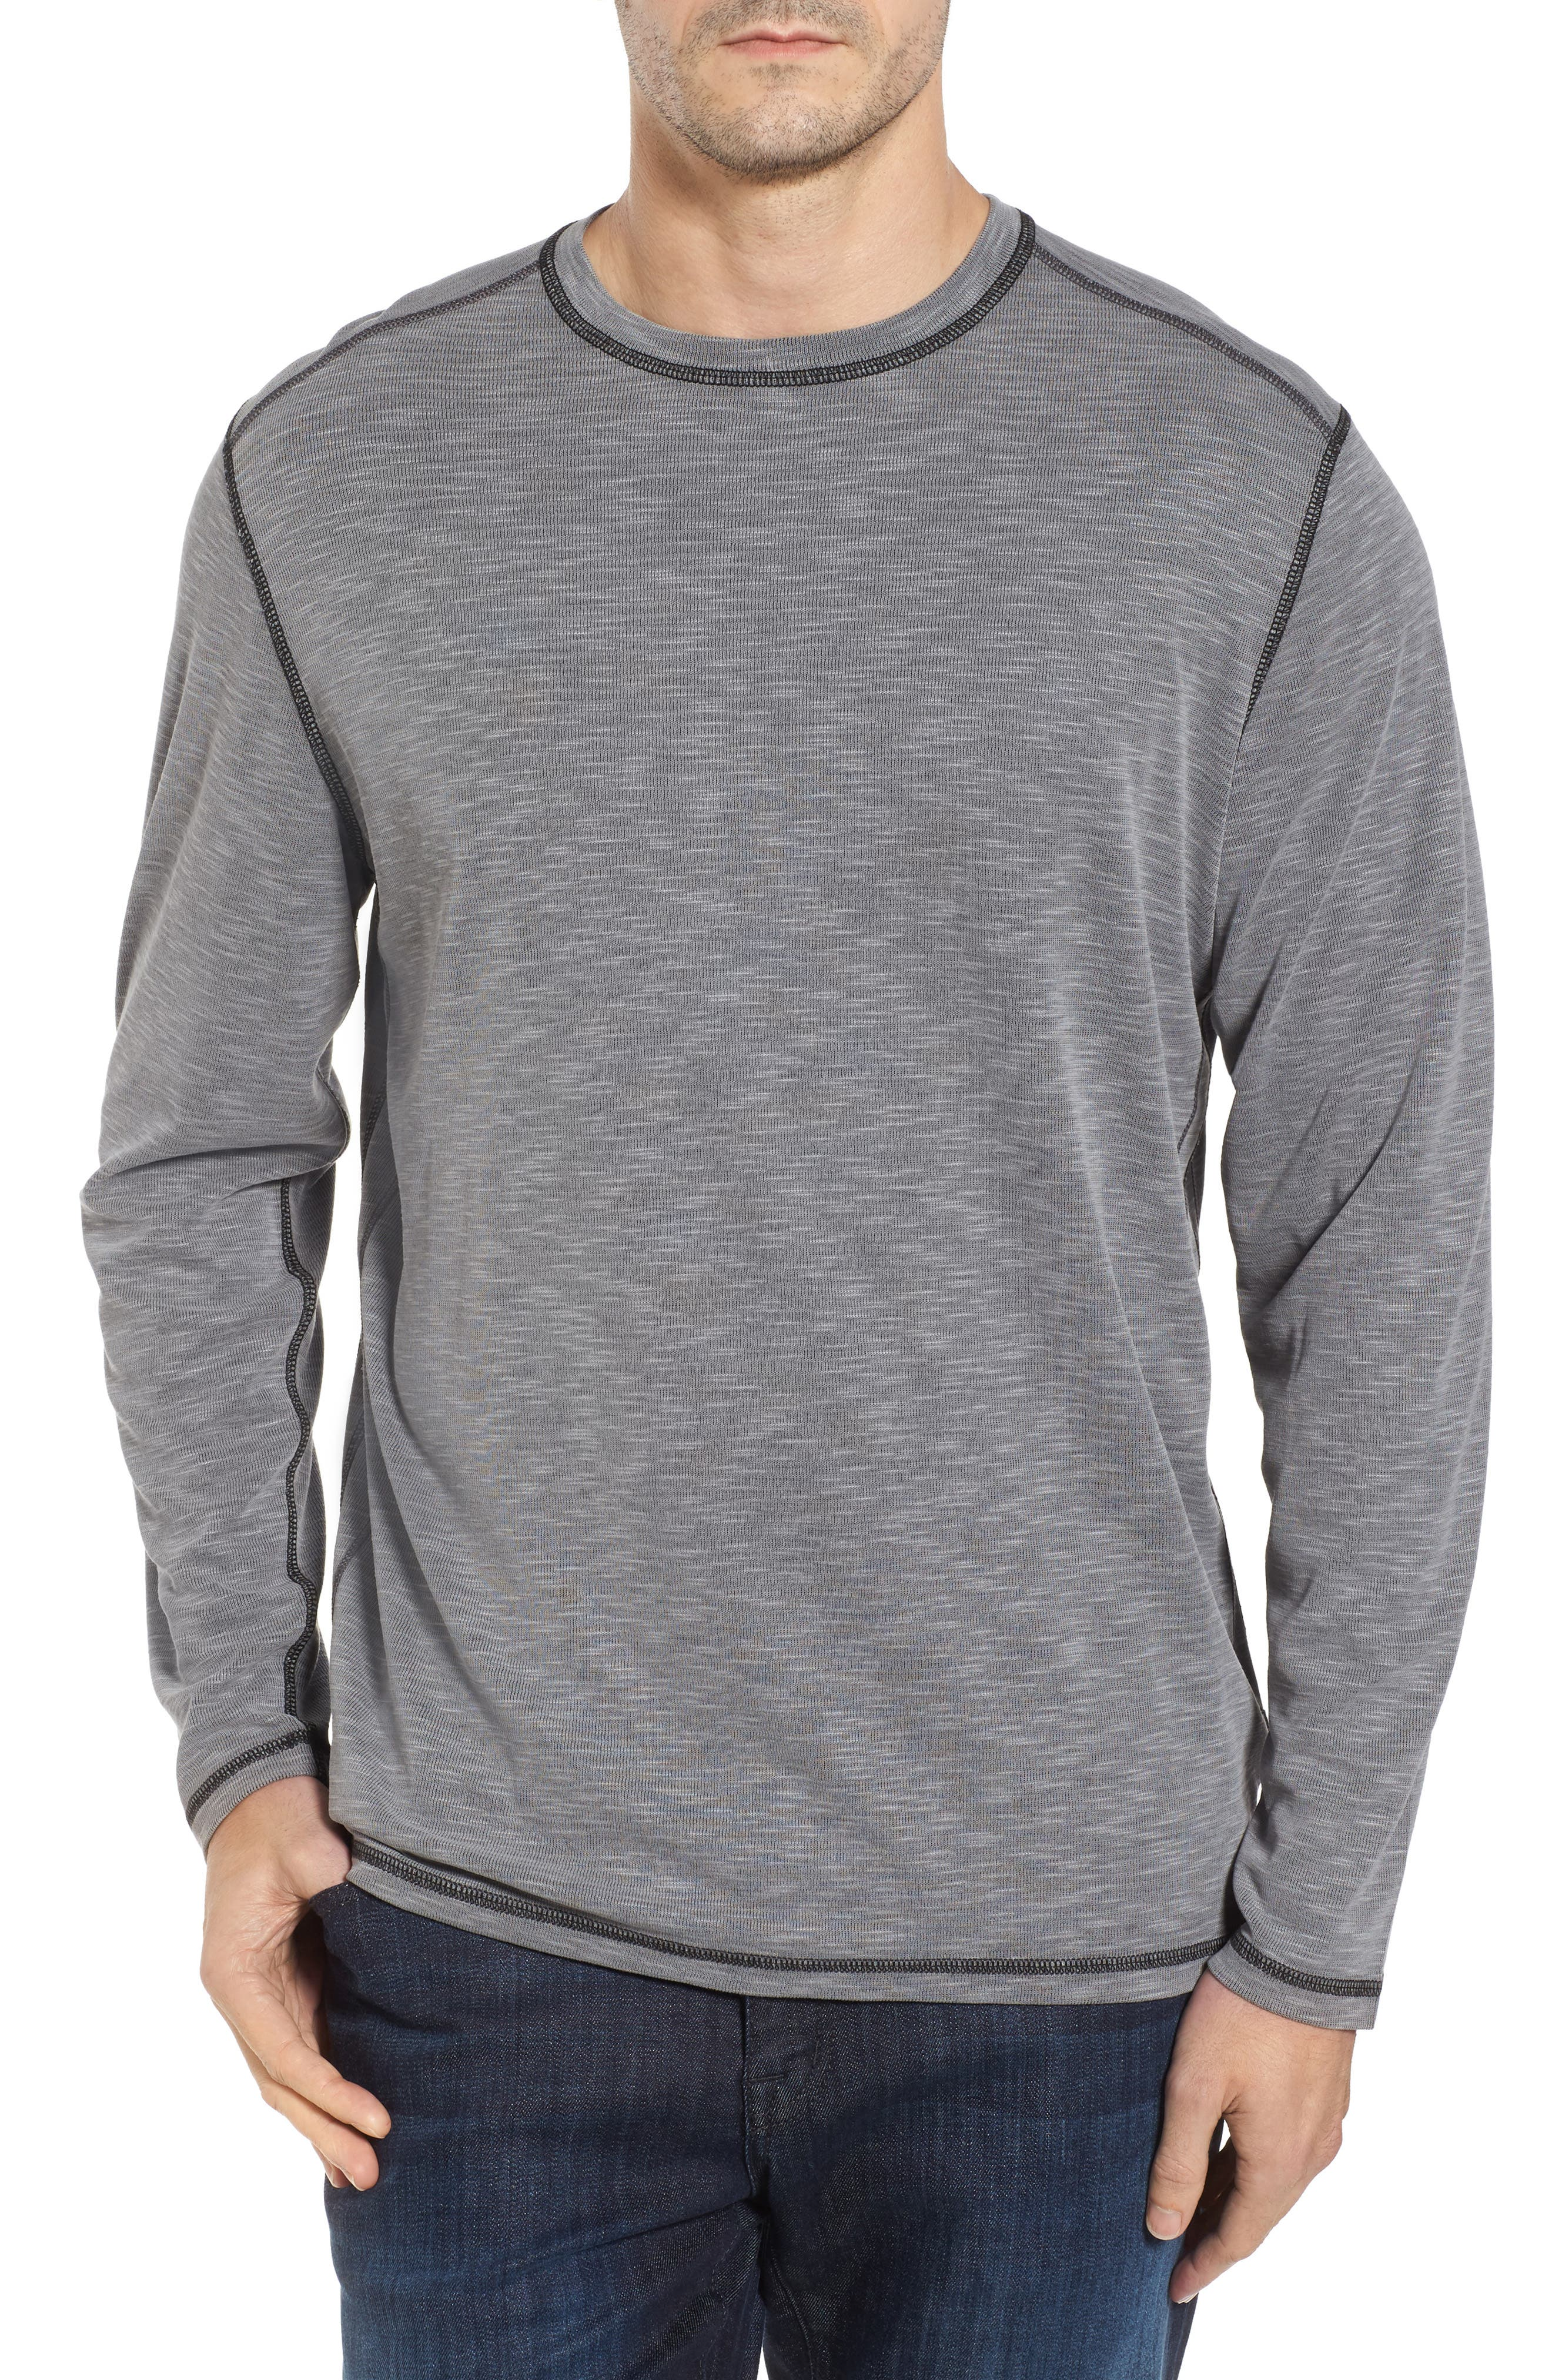 Flip Tide Long Sleeve T-Shirt,                             Main thumbnail 1, color,                             001